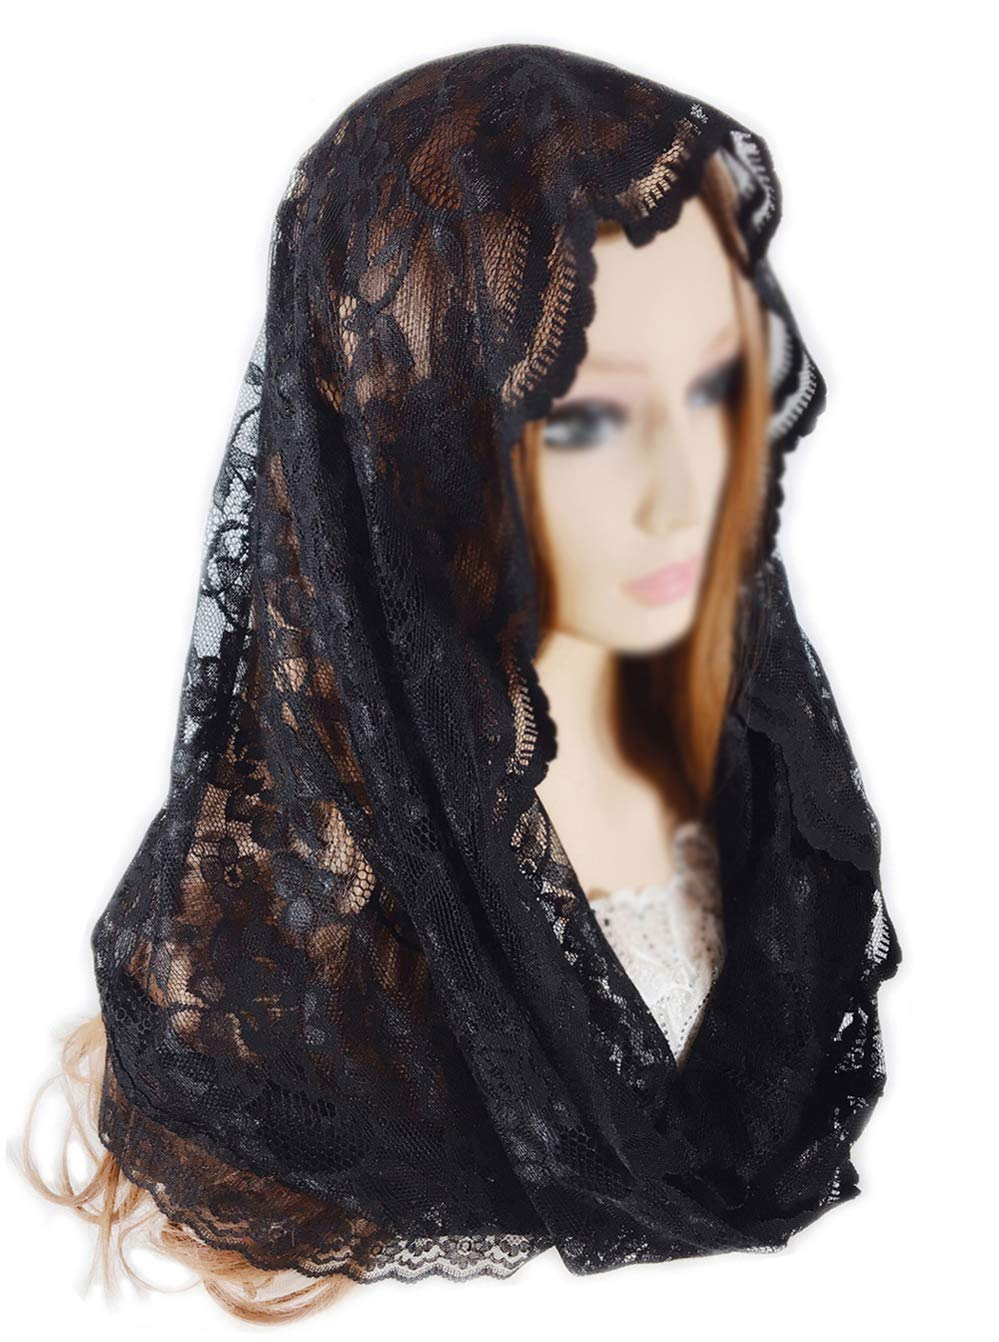 Pamor Infinity Floral Veils Scarf Catholic Church Veil Head Covering Latin Mass Lace Mantilla with Free Hairclip (black)